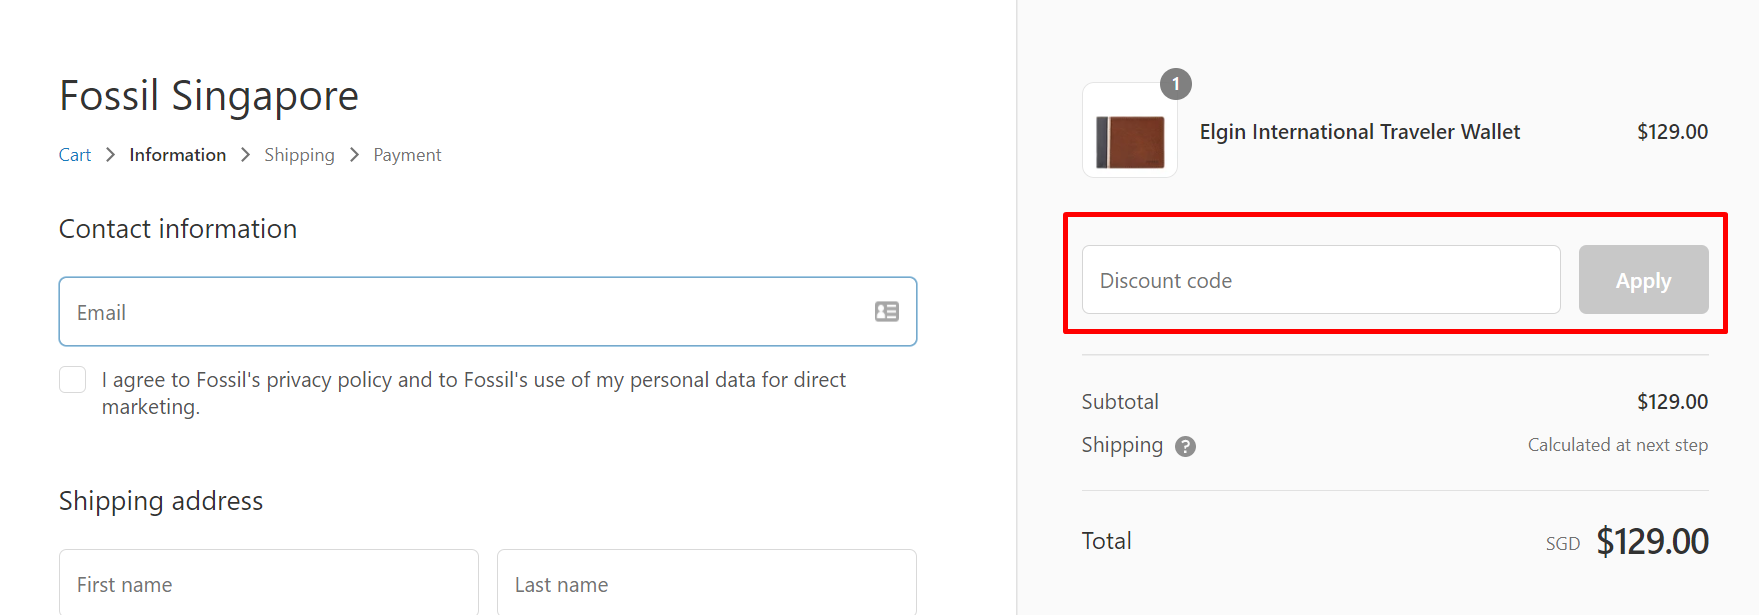 How do I use my Fossil discount code?